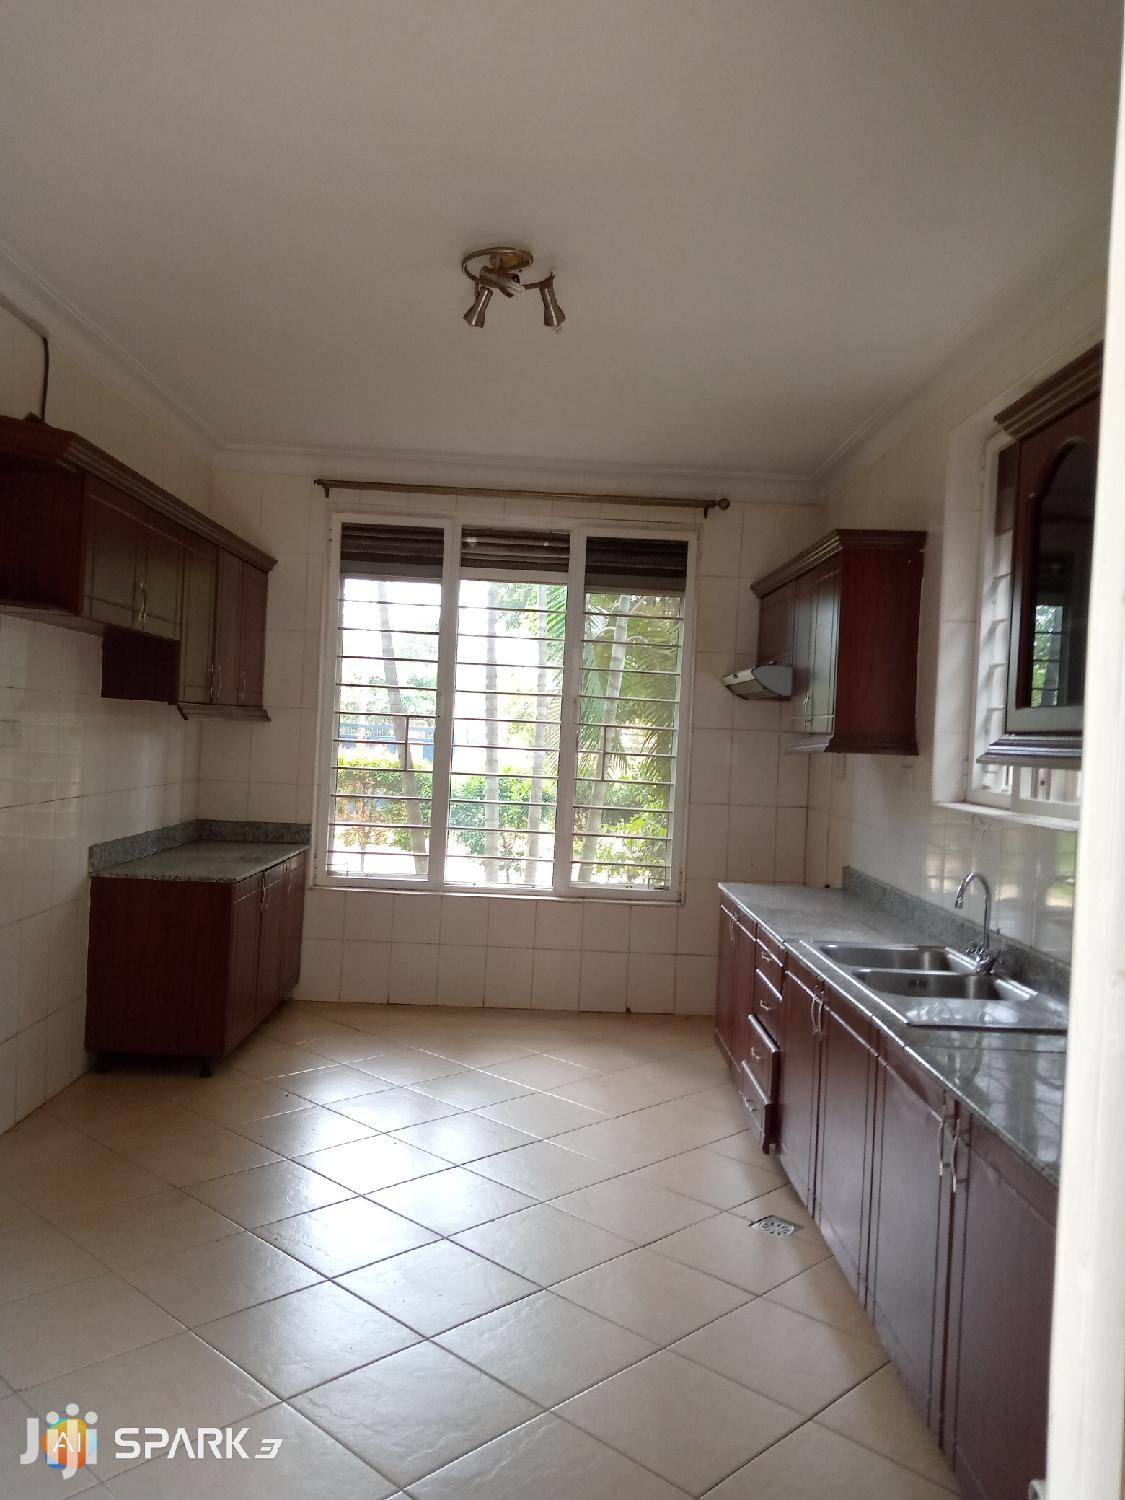 Ntinda Four Bedroom House For Rent | Houses & Apartments For Rent for sale in Kampala, Central Region, Uganda